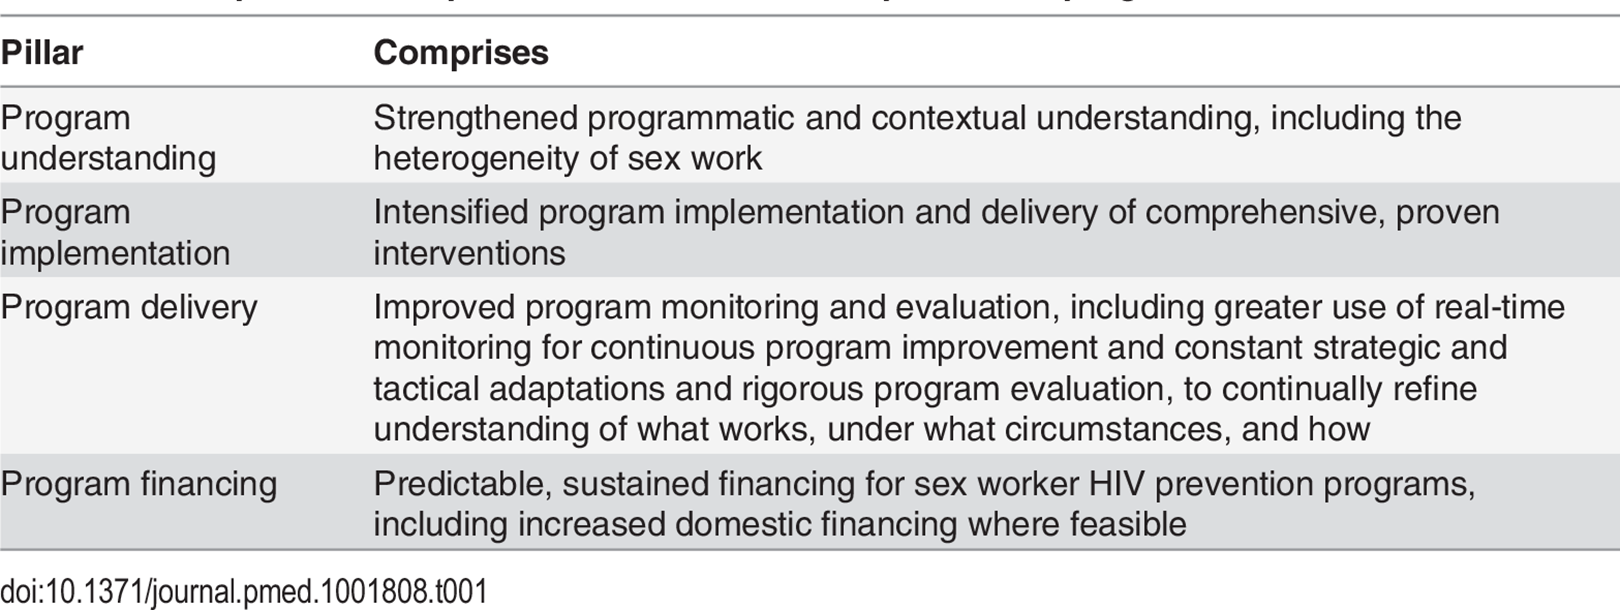 Principles of a comprehensive sex worker HIV prevention program.